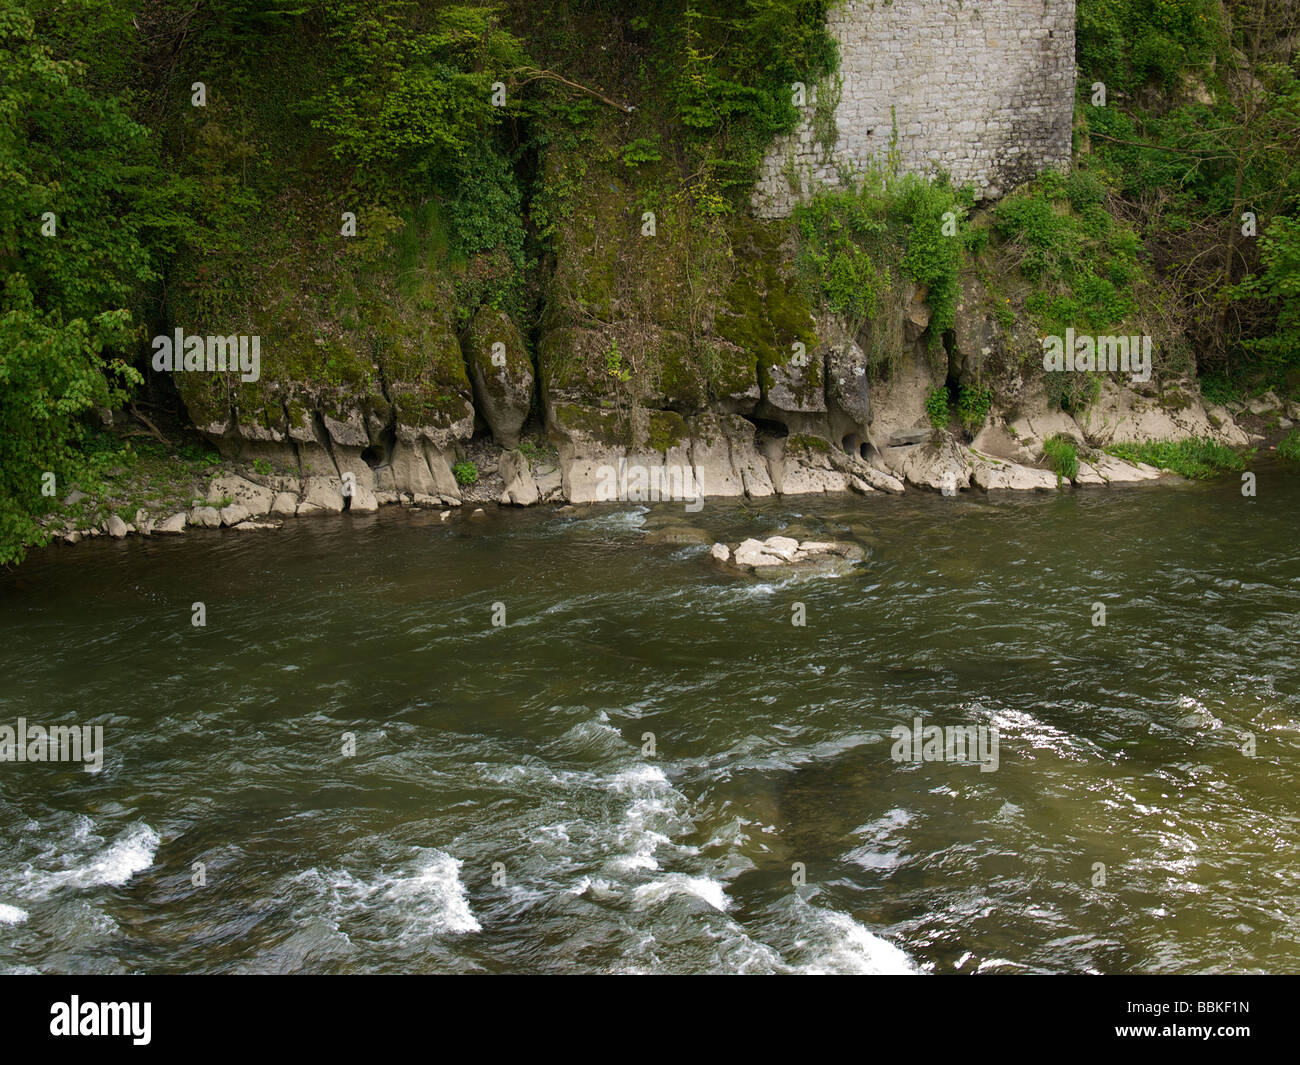 The bank of the Ourthe river shows very clear erosion patterns typical of wear by fast flowing water Durbuy Belgium Stock Photo